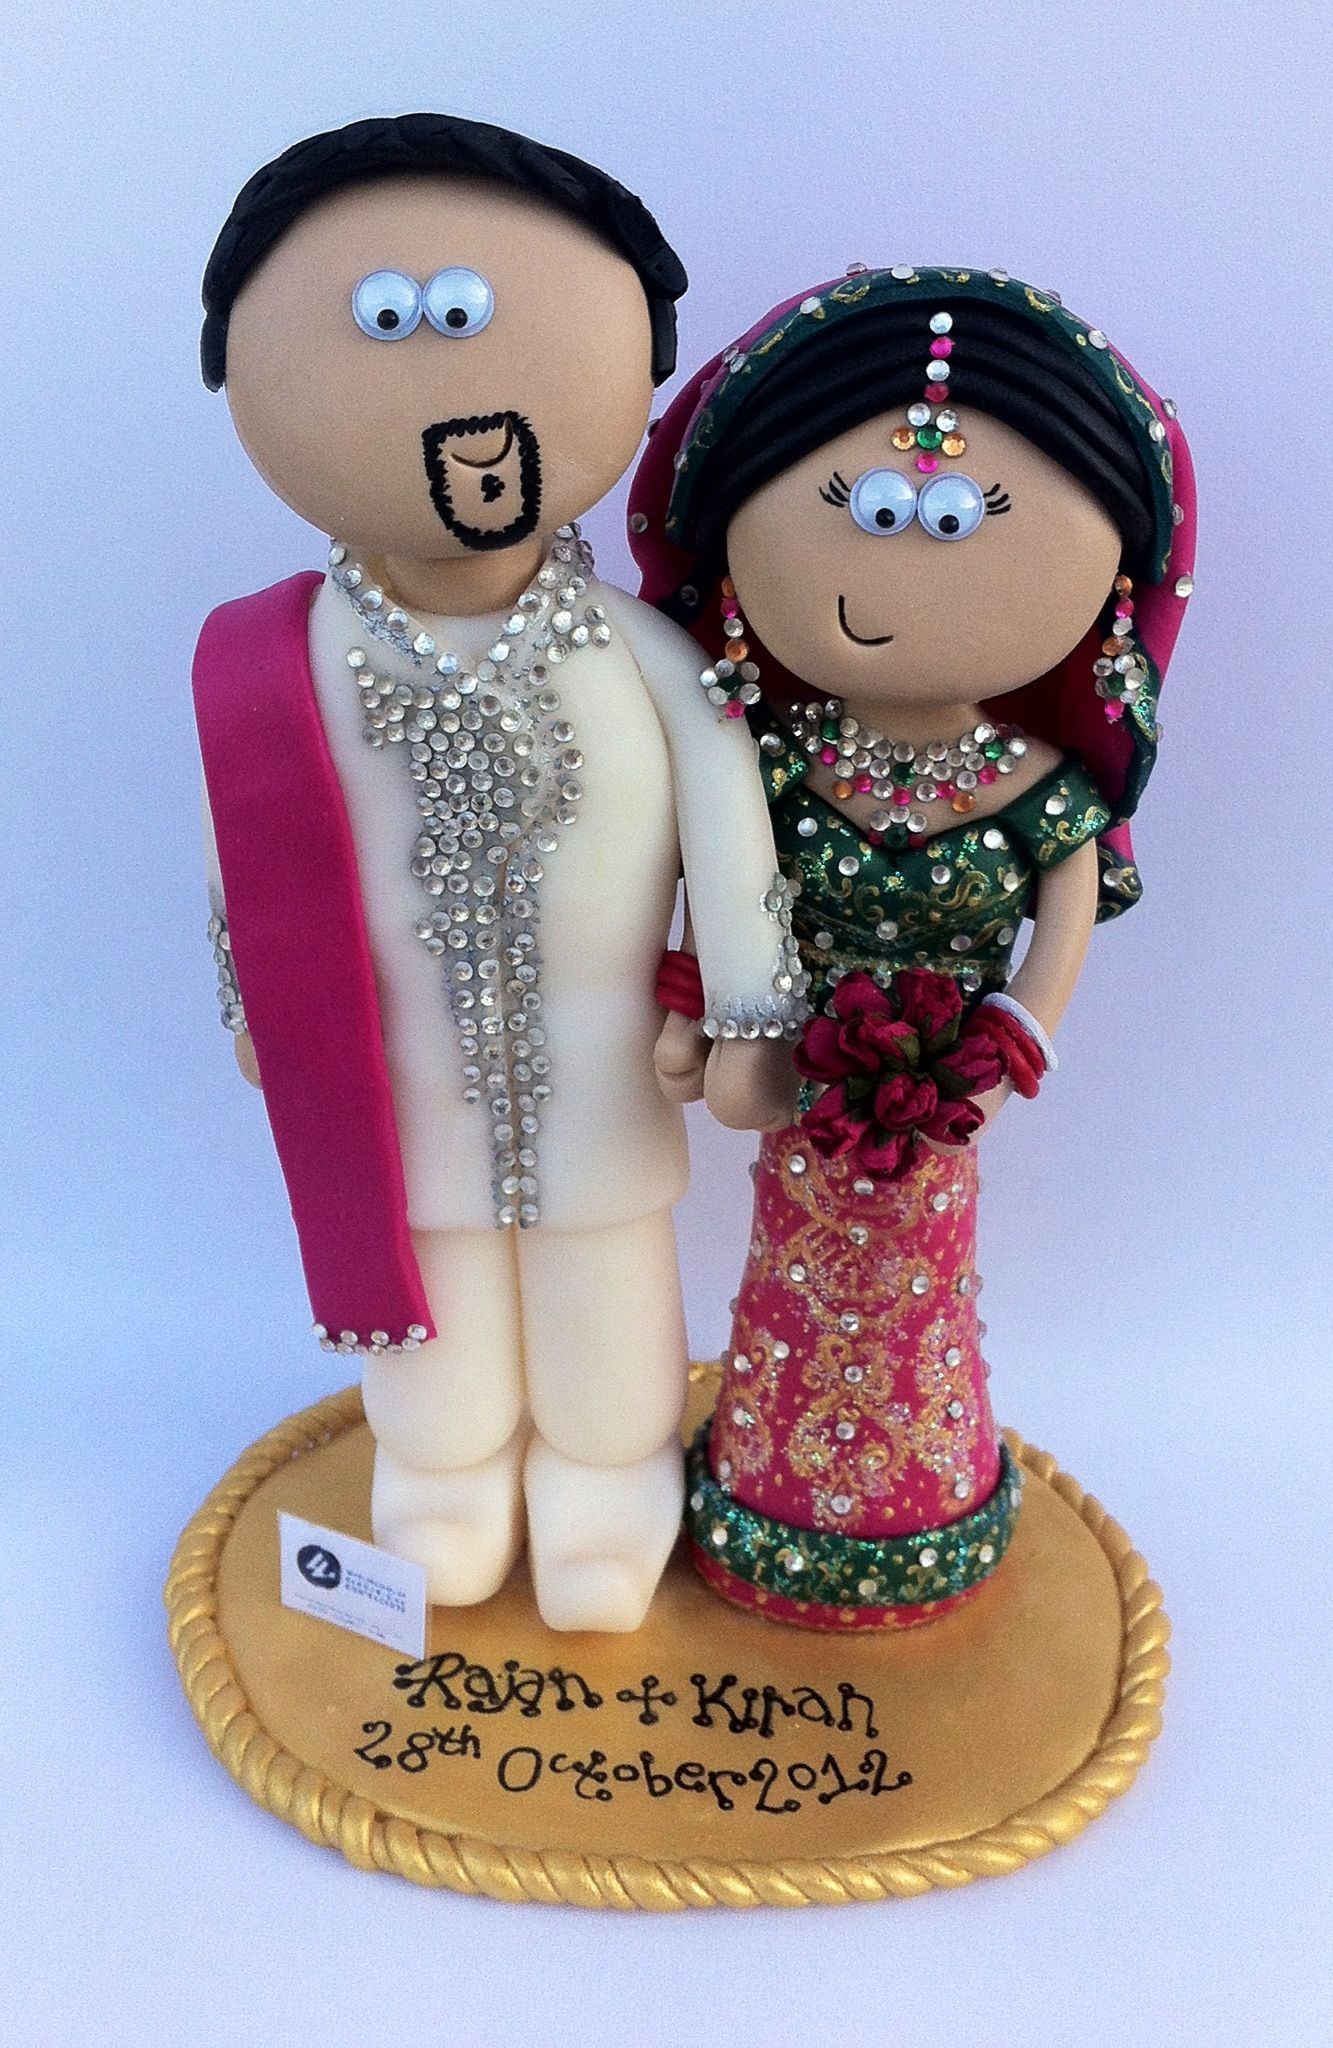 Another Very Detailed Asian Cake Topper I Make Them In Any Outfits Poses You Indian Wedding